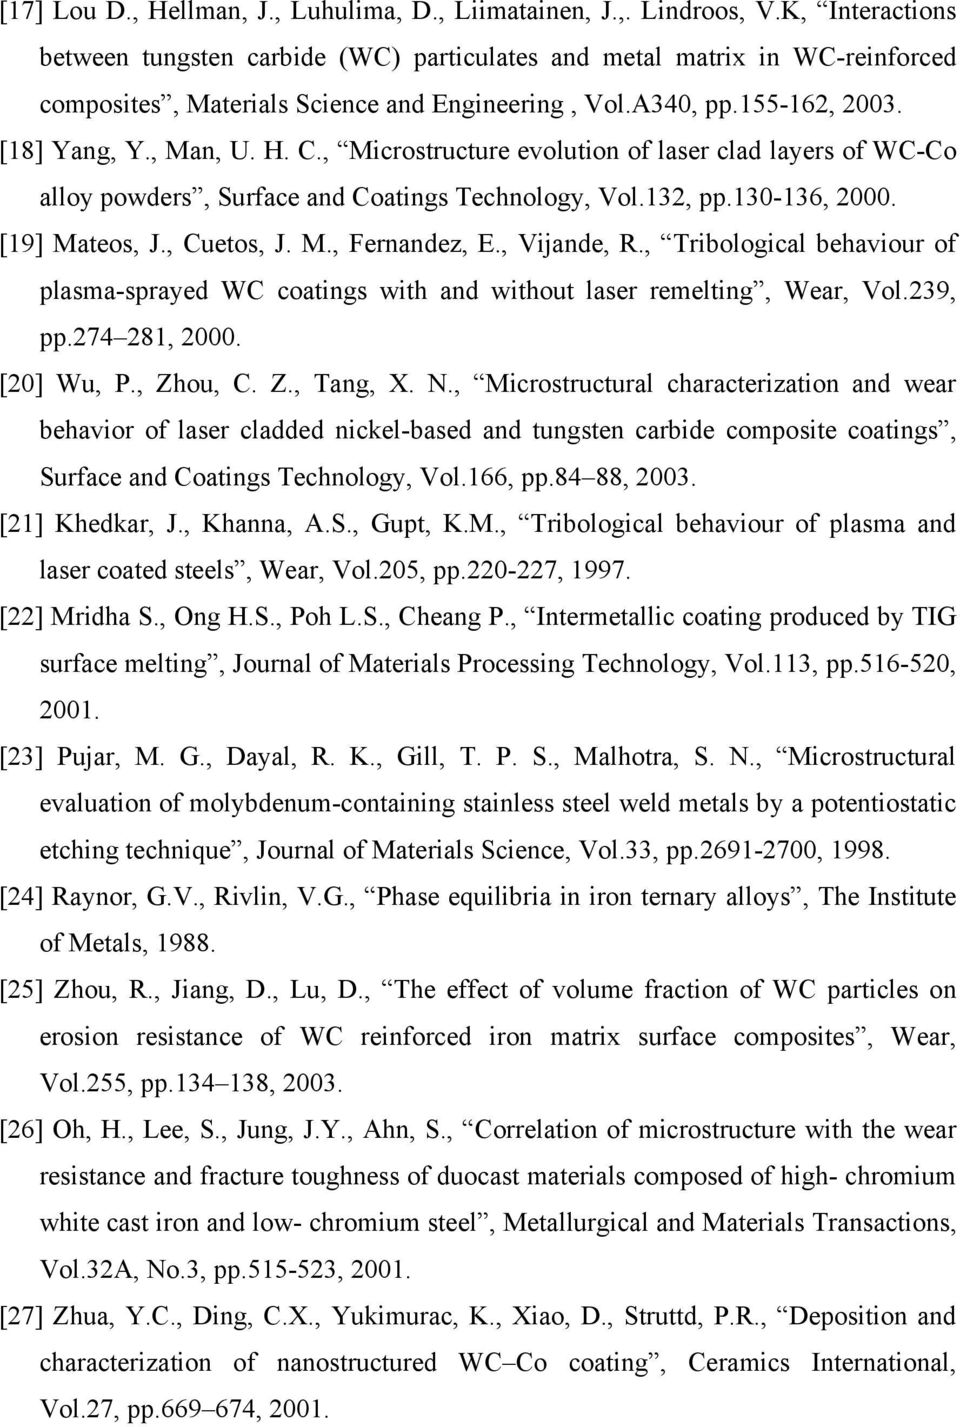 , Microstructure evolution of laser clad layers of WC-Co alloy powders, Surface and Coatings Technology, Vol.132, pp.130-136, 2000. [19] Mateos, J., Cuetos, J. M., Fernandez, E., Vijande, R.